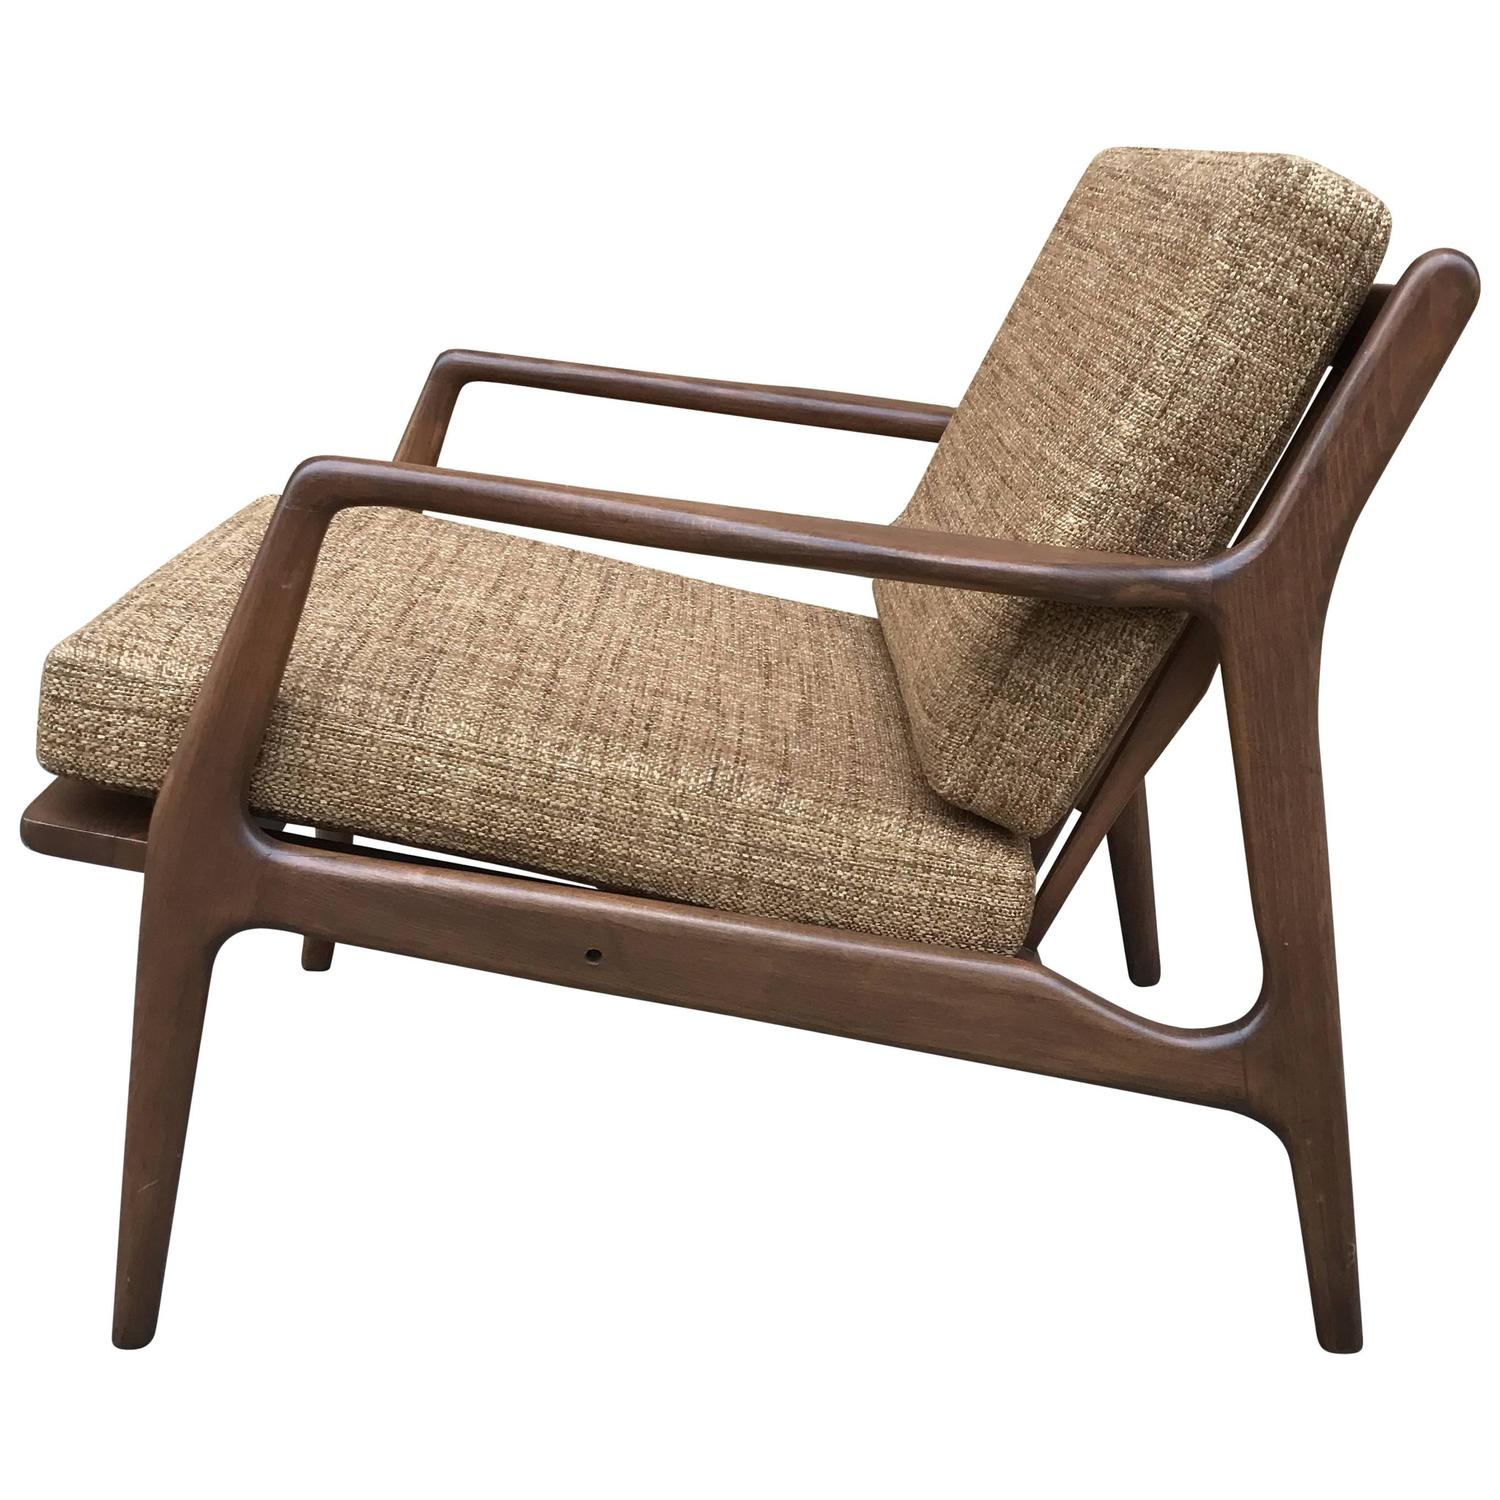 This sculptural pair of lounge chairs by ib kofod larsen is no longer - Mid Century Modern Walnut Lounge Chair By Ib Kofod Larsen For Sale At 1stdibs